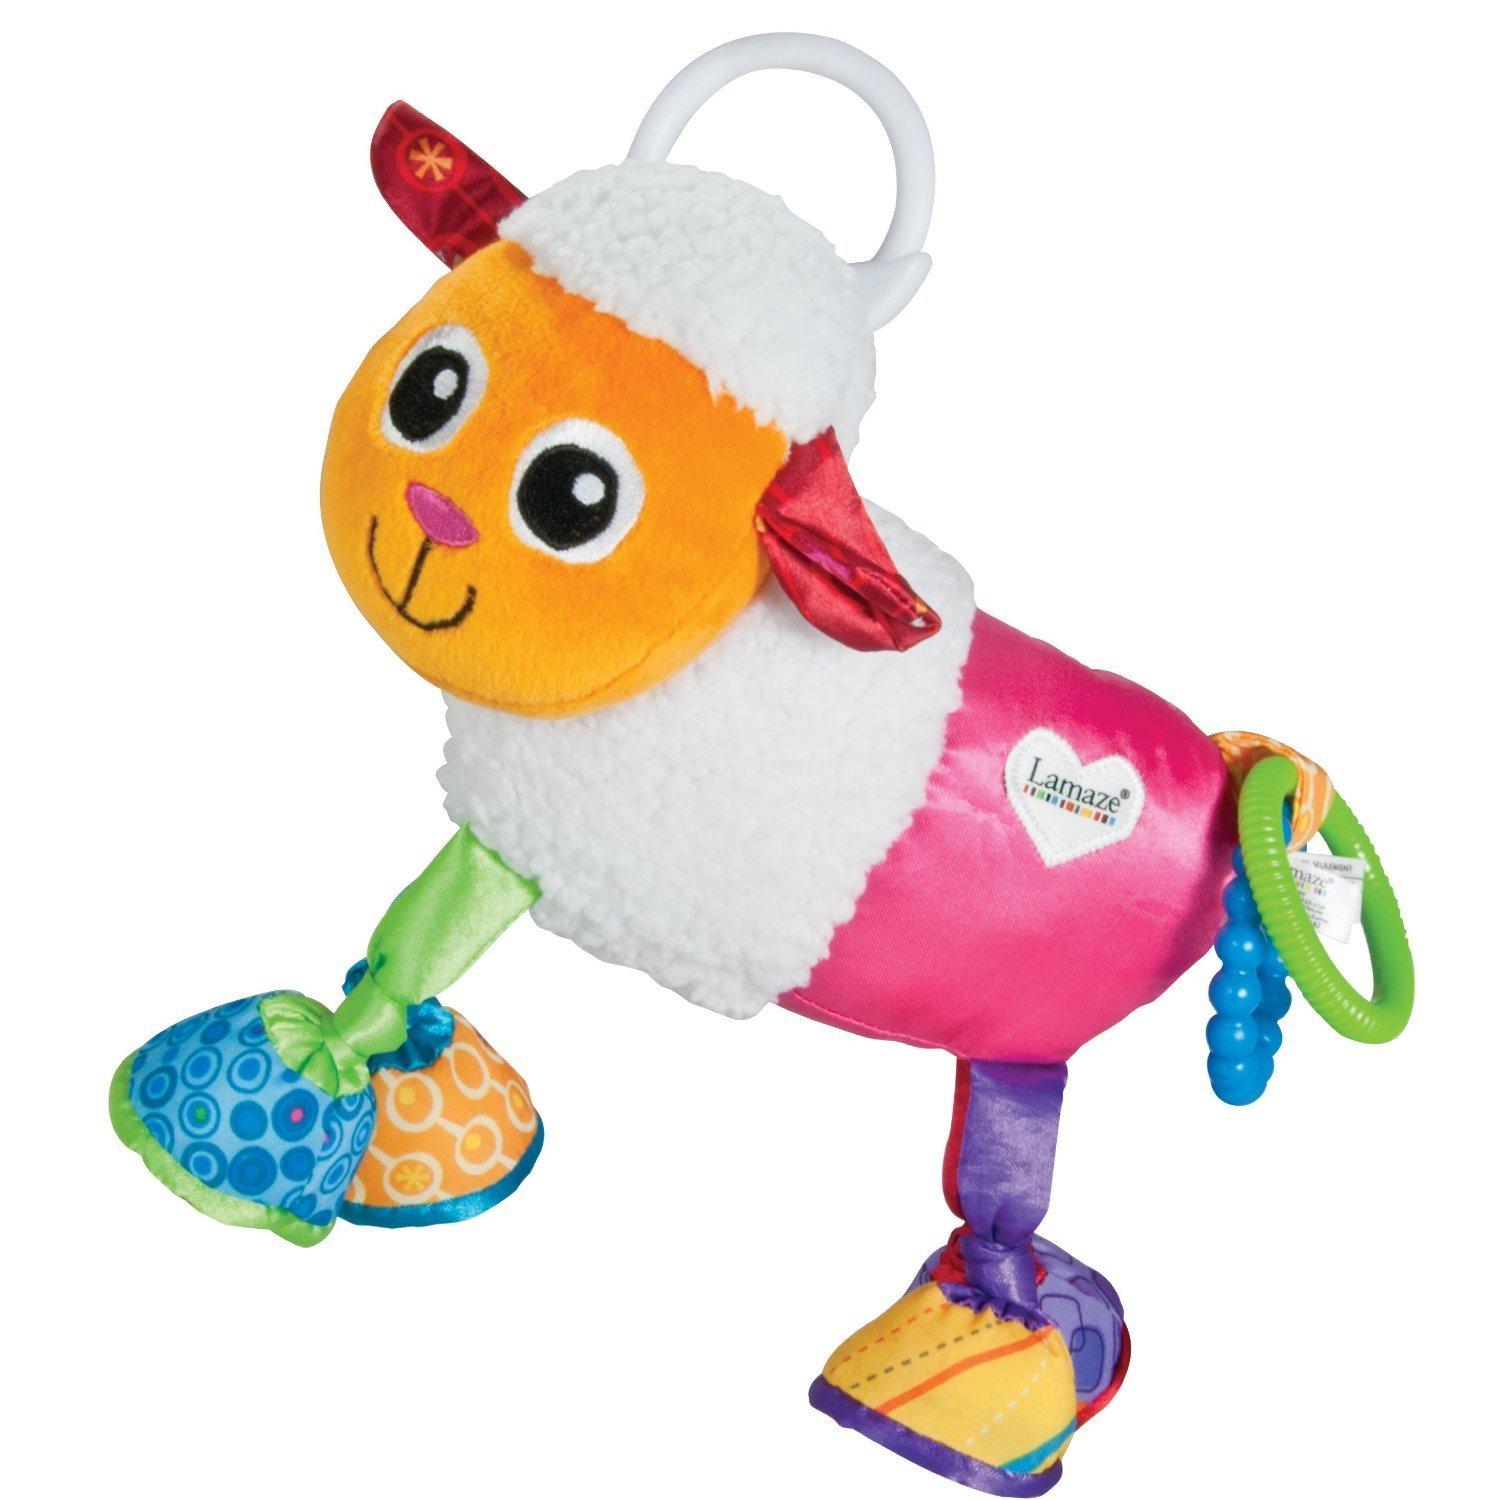 Lamaze Play & Grow Shearmy the Sheep Toy Infant Baby Care ...